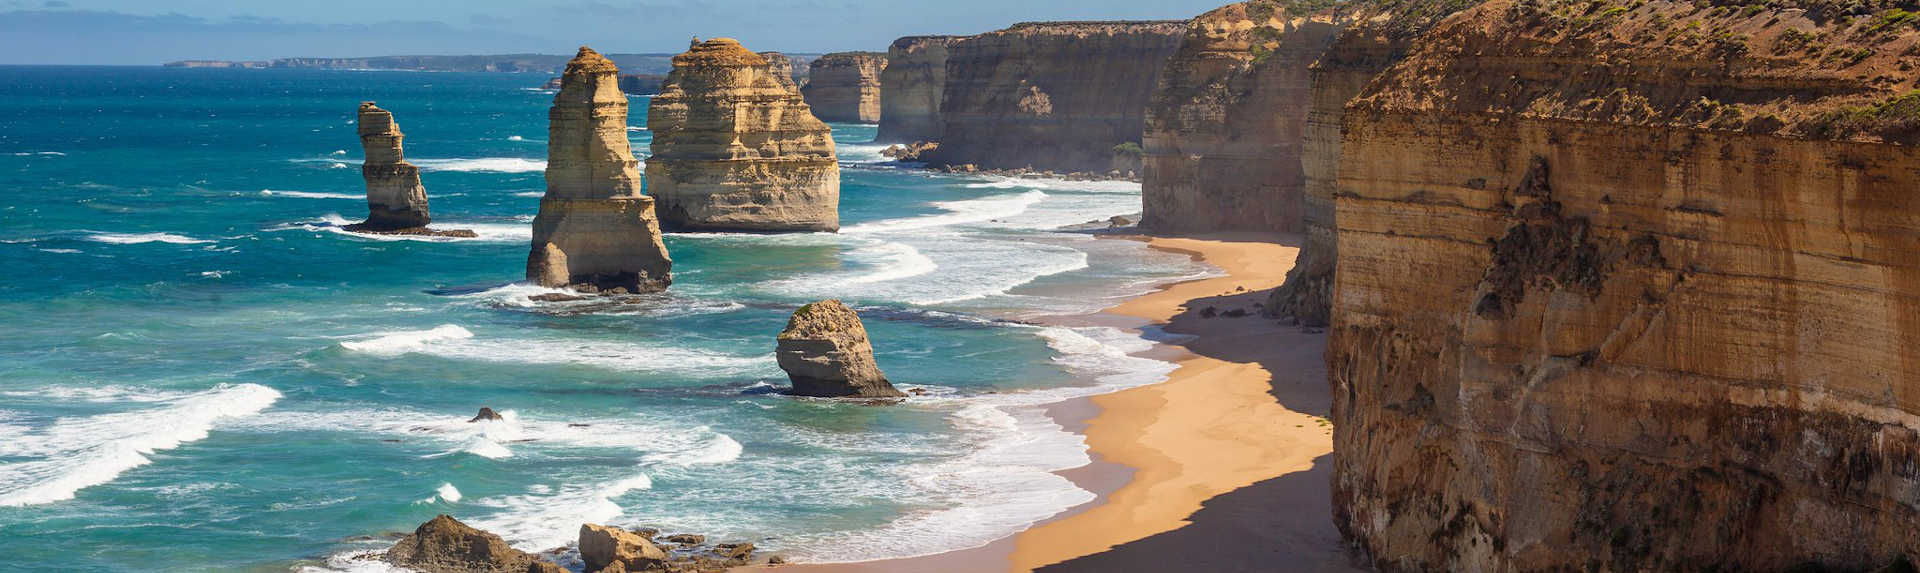 What should you not miss on the Great Ocean Road?